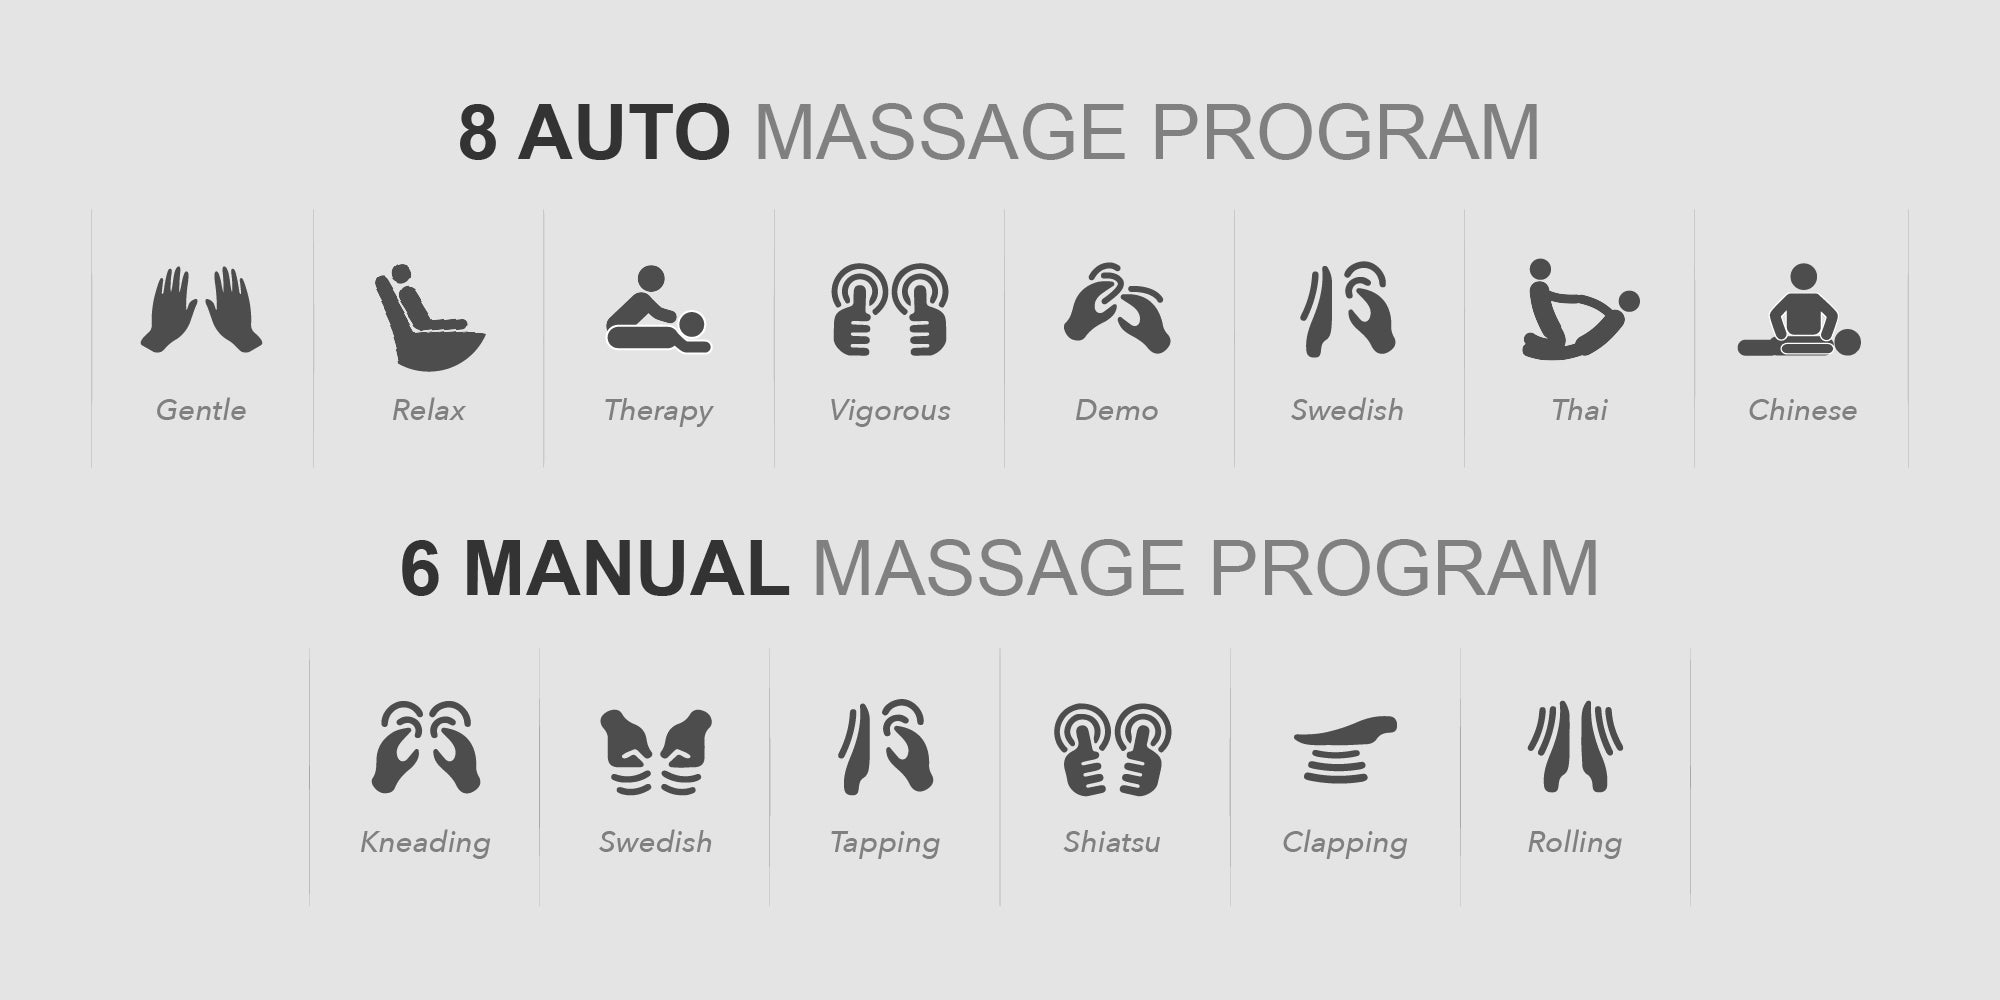 8 auto massage programs and 6 manual massage programs